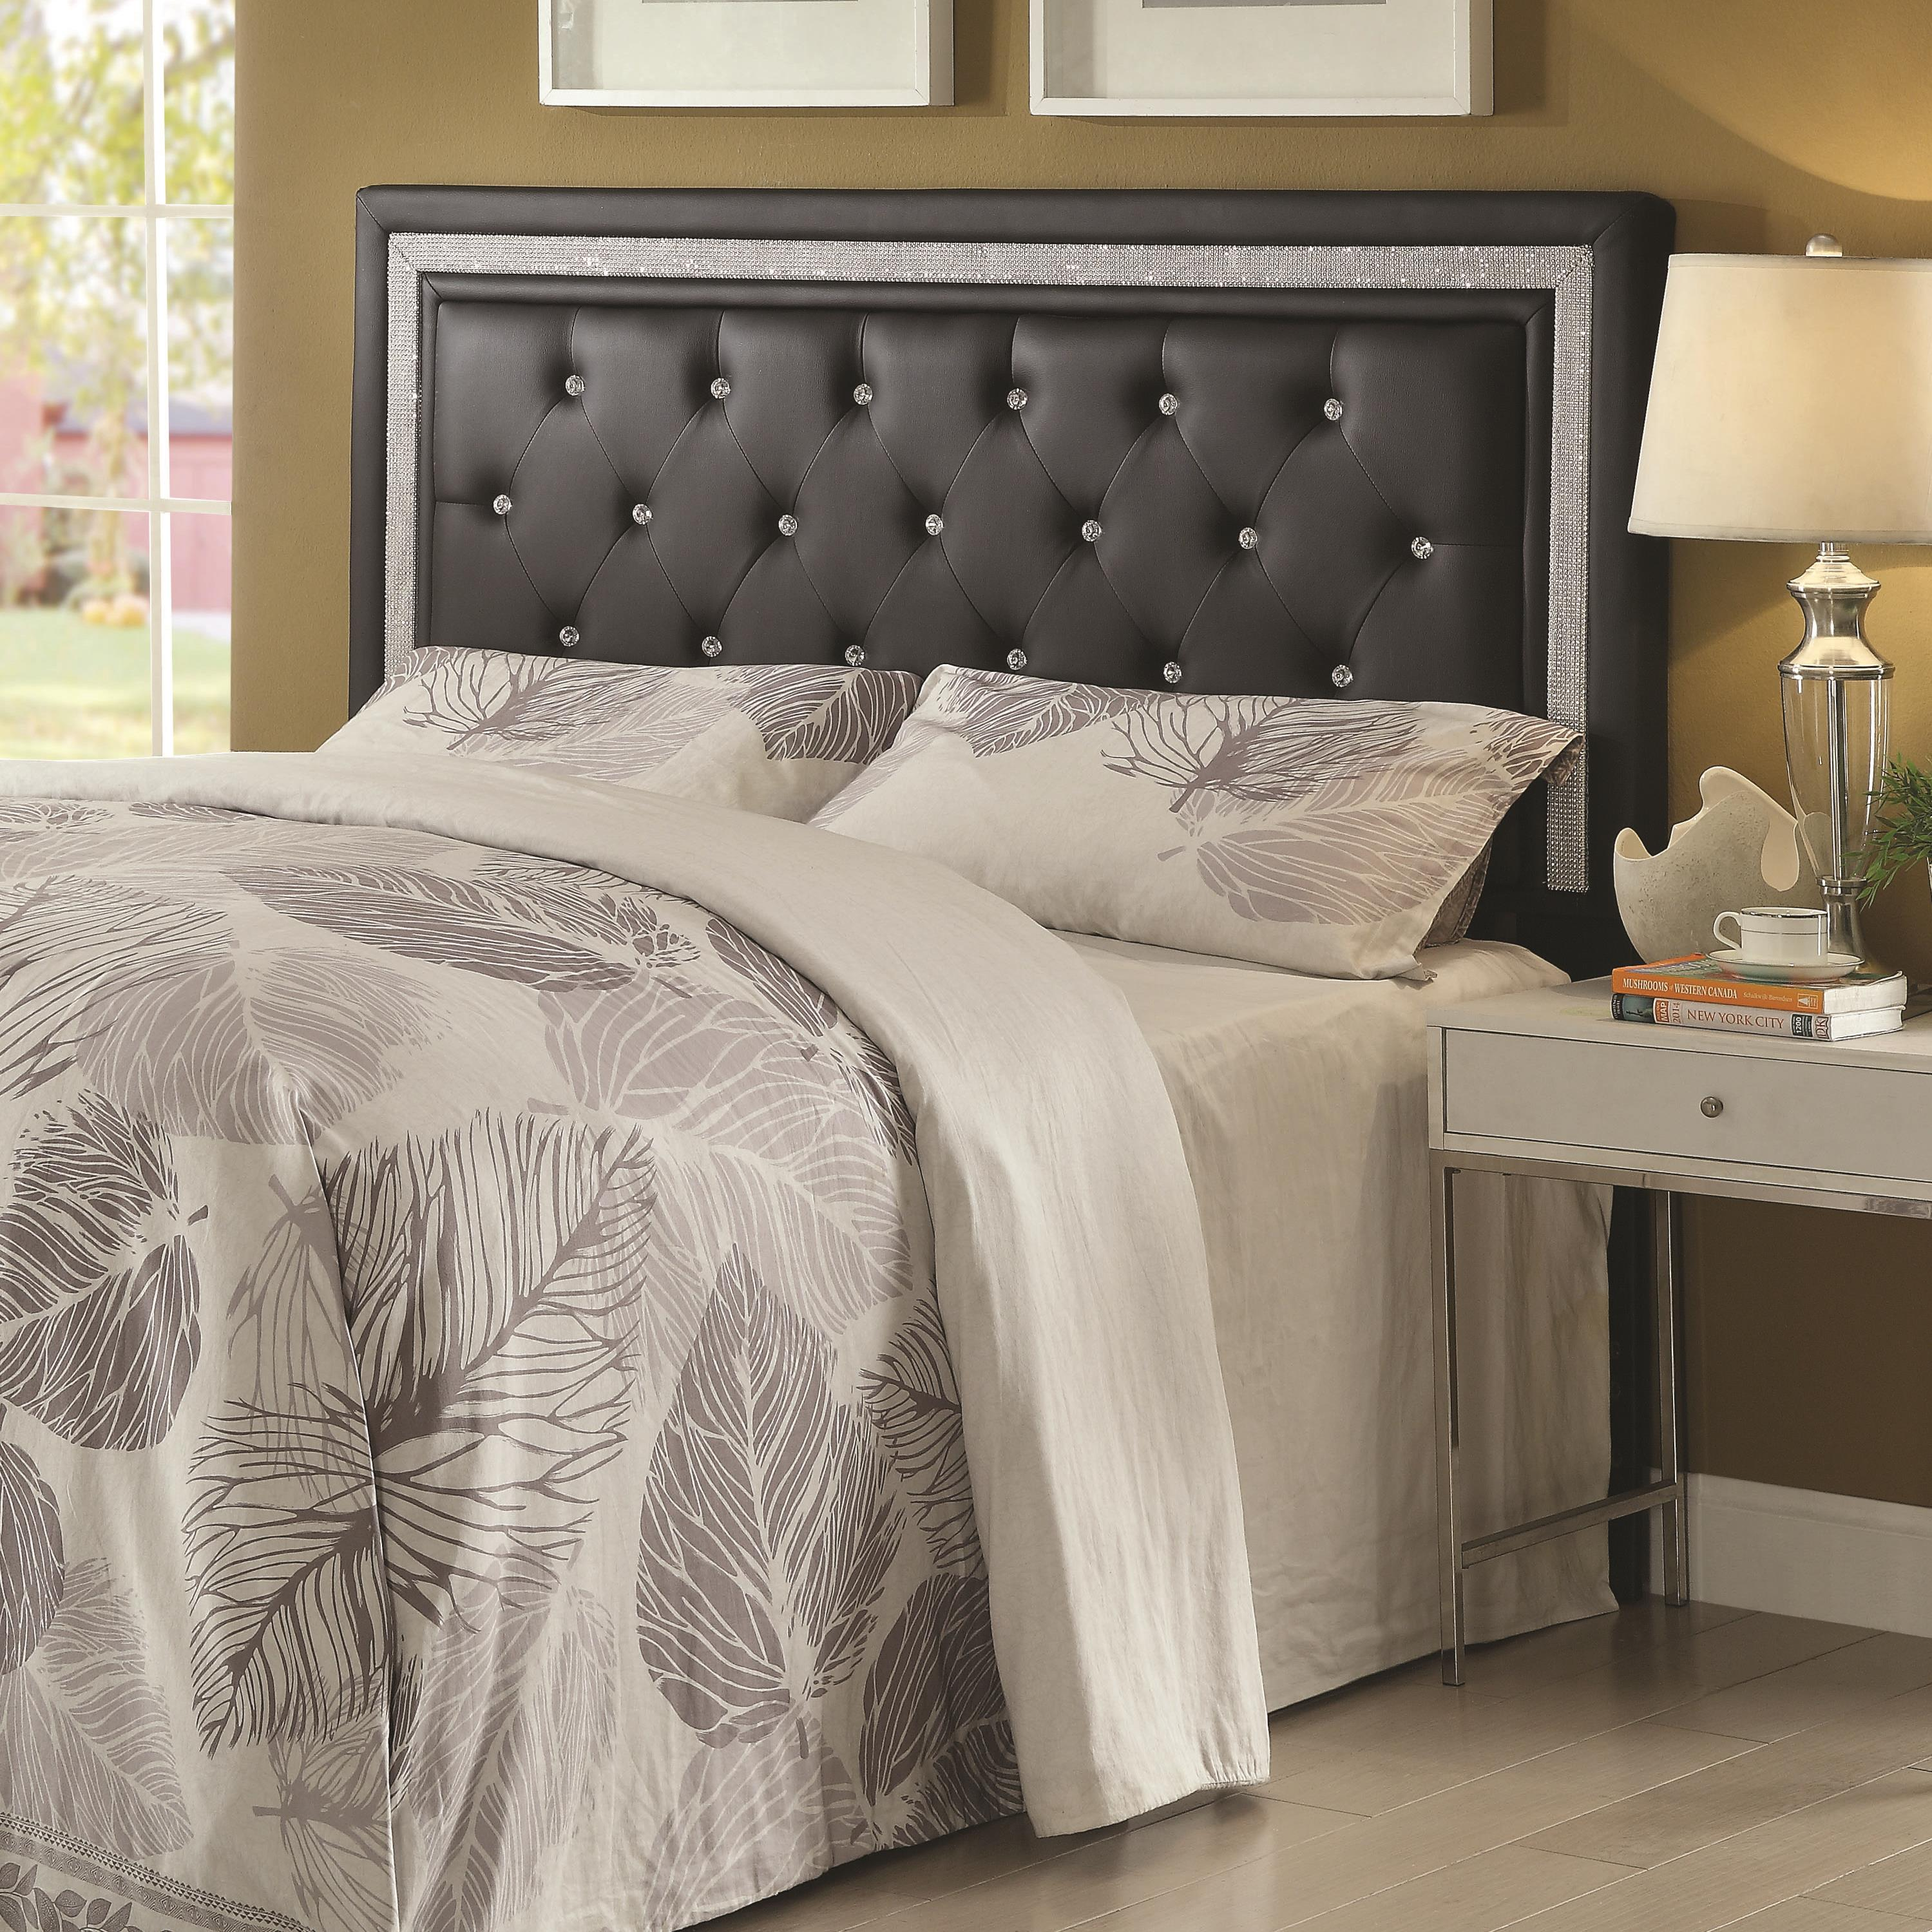 Andenne Bedroom King/ California King Headboard by Coaster at Rife's Home Furniture